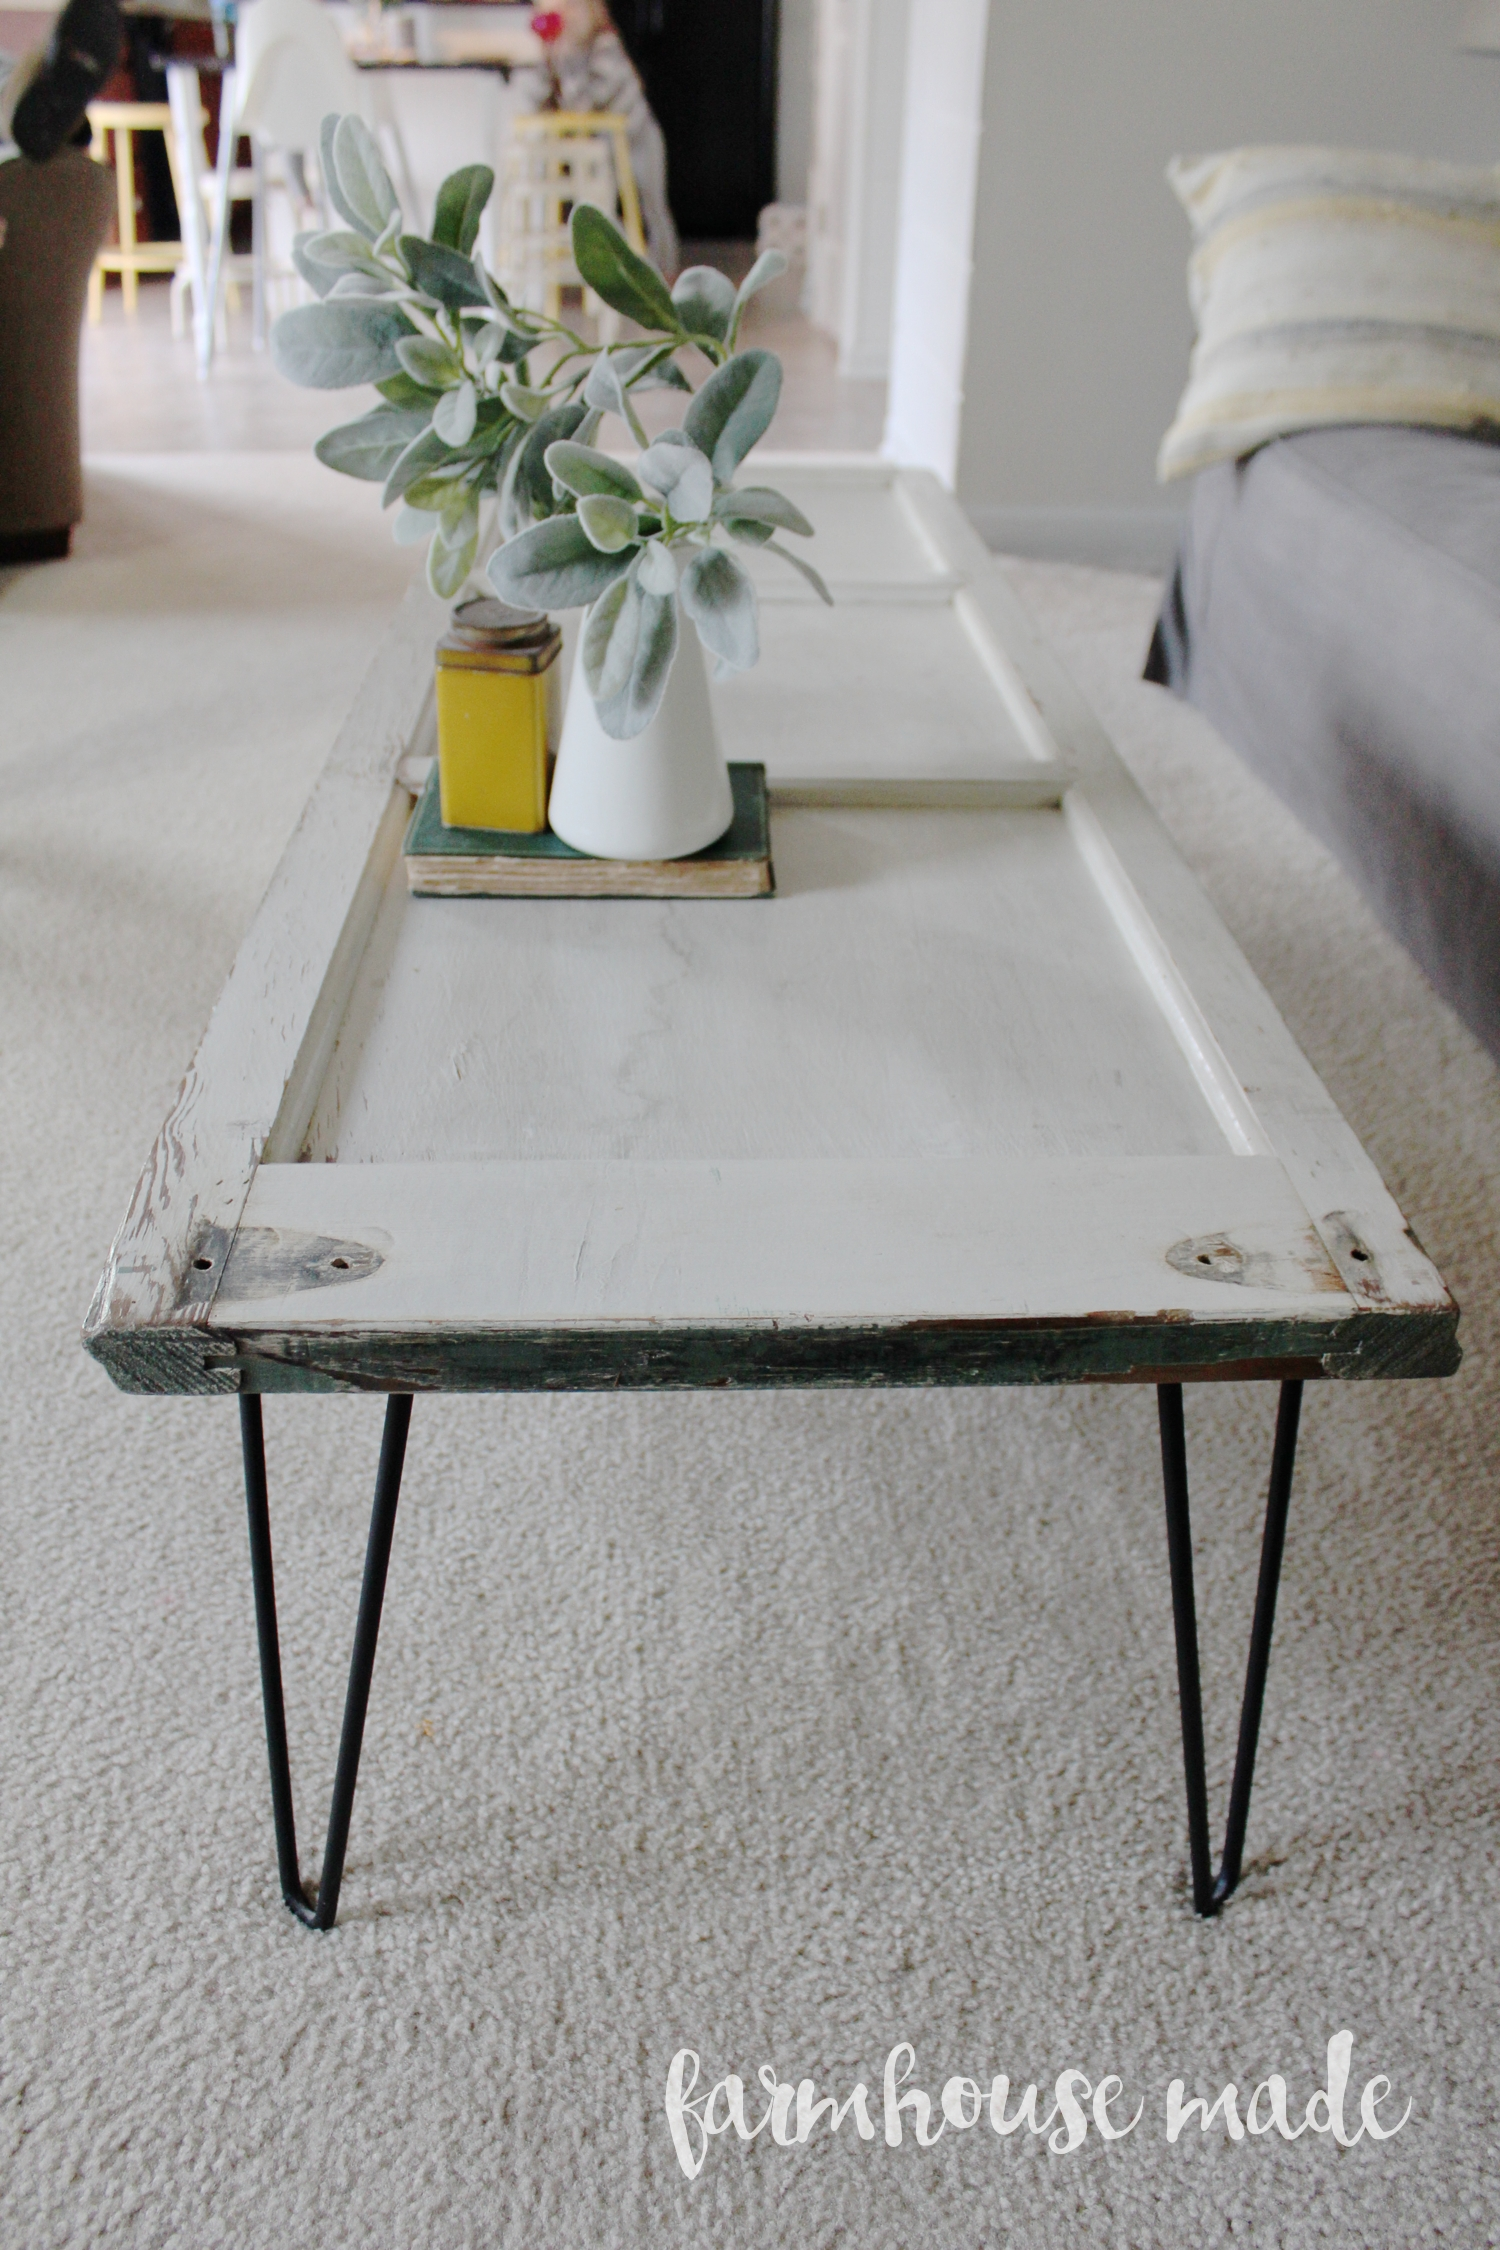 top 5 diy u0027s to add farmhouse style farmhouse made